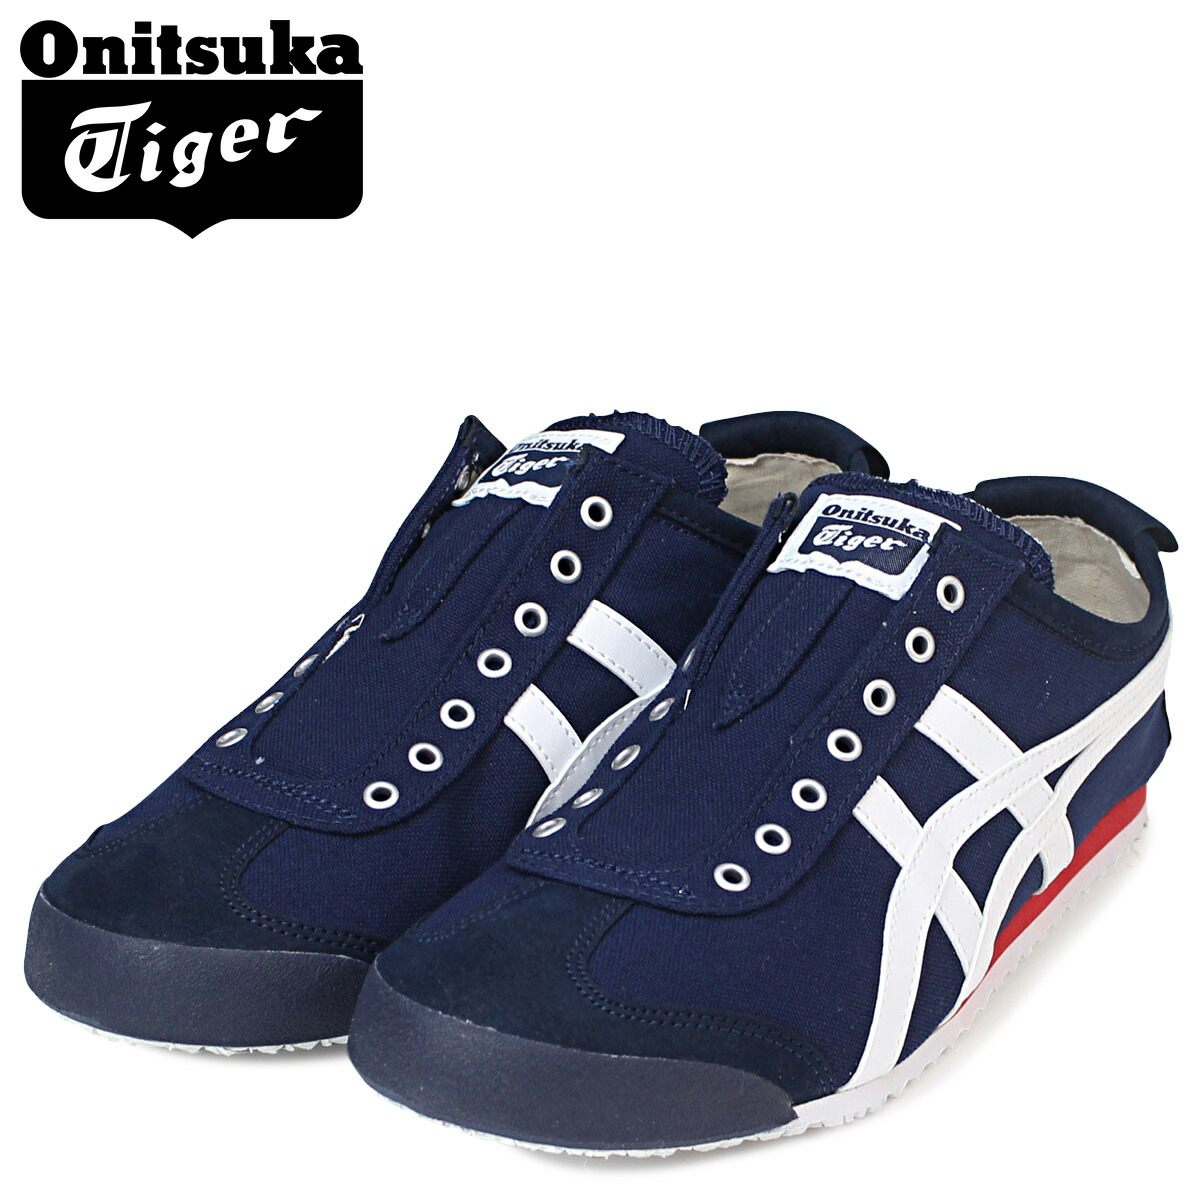 allsports onitsuka tiger asics onitsuka tiger asics mexico 66 slip on sneakers mexico 66 slip. Black Bedroom Furniture Sets. Home Design Ideas